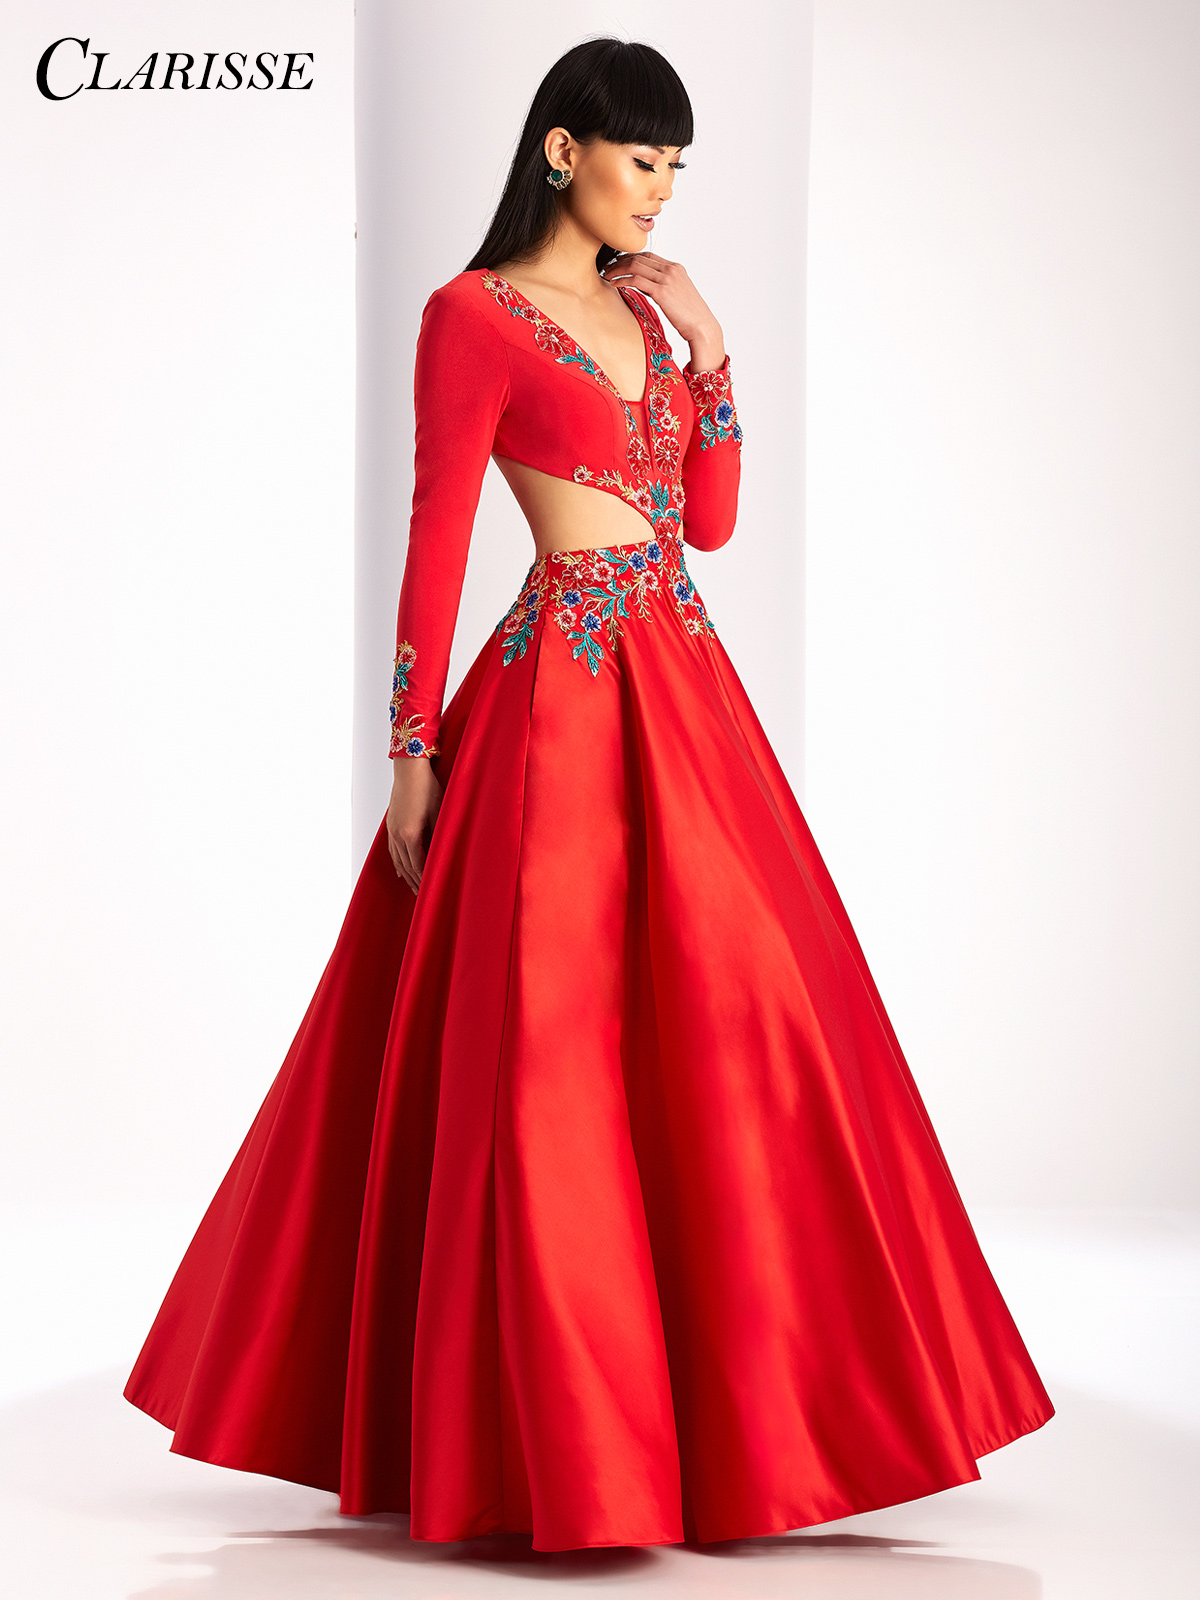 Clarisse Prom Dress 3025 | Promgirl.net